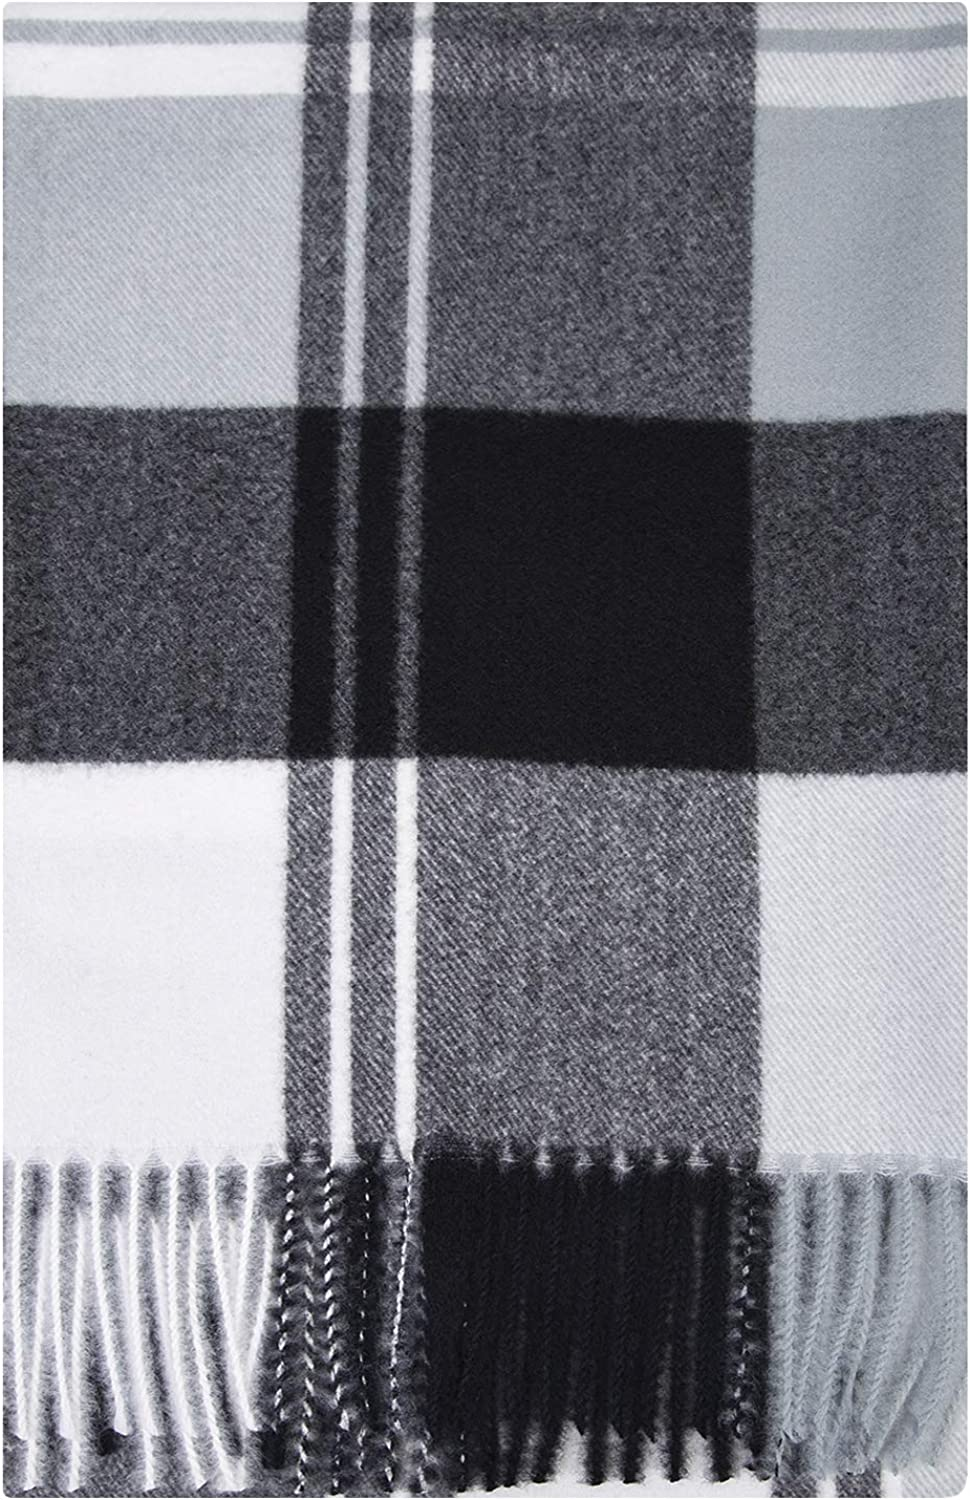 ZOMFUSK Winter Women Plaid Scarf Soft outlet Thick Large Bombing new work Warm Extra Lig